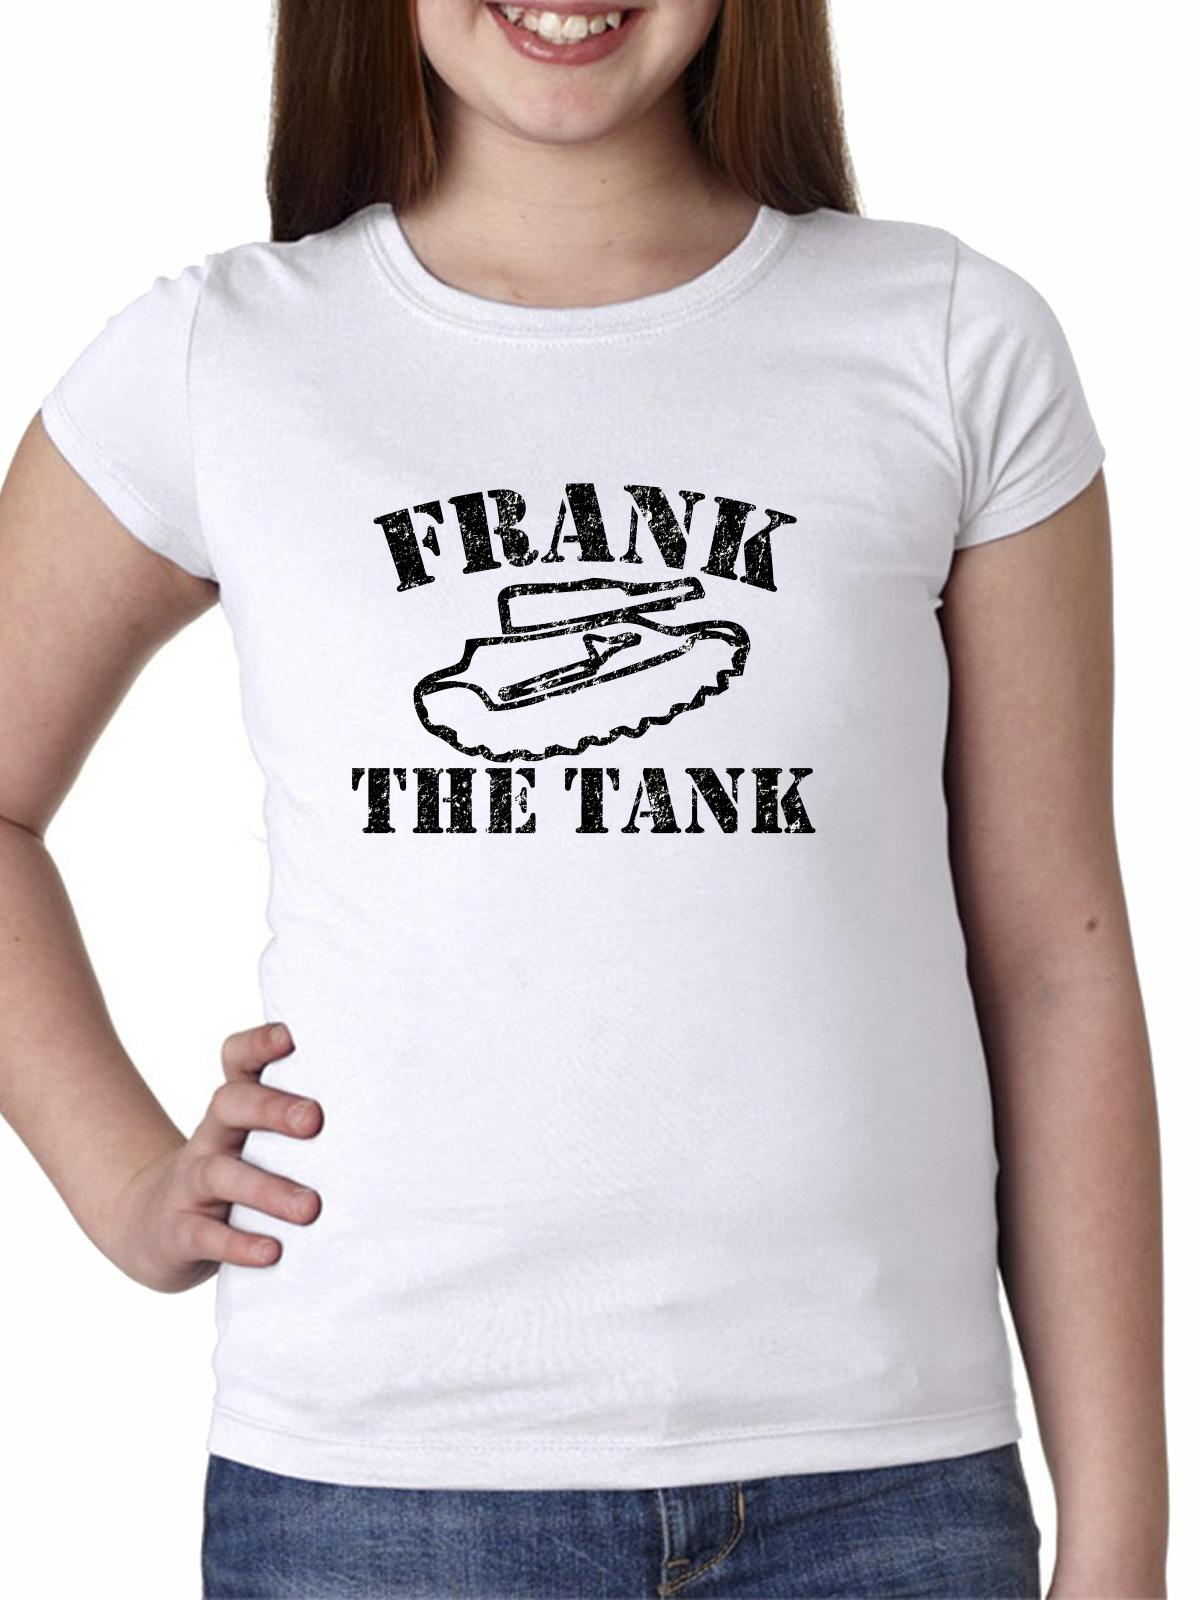 Frank the Tank Funny Graphic Girl's Cotton Youth T-Shirt